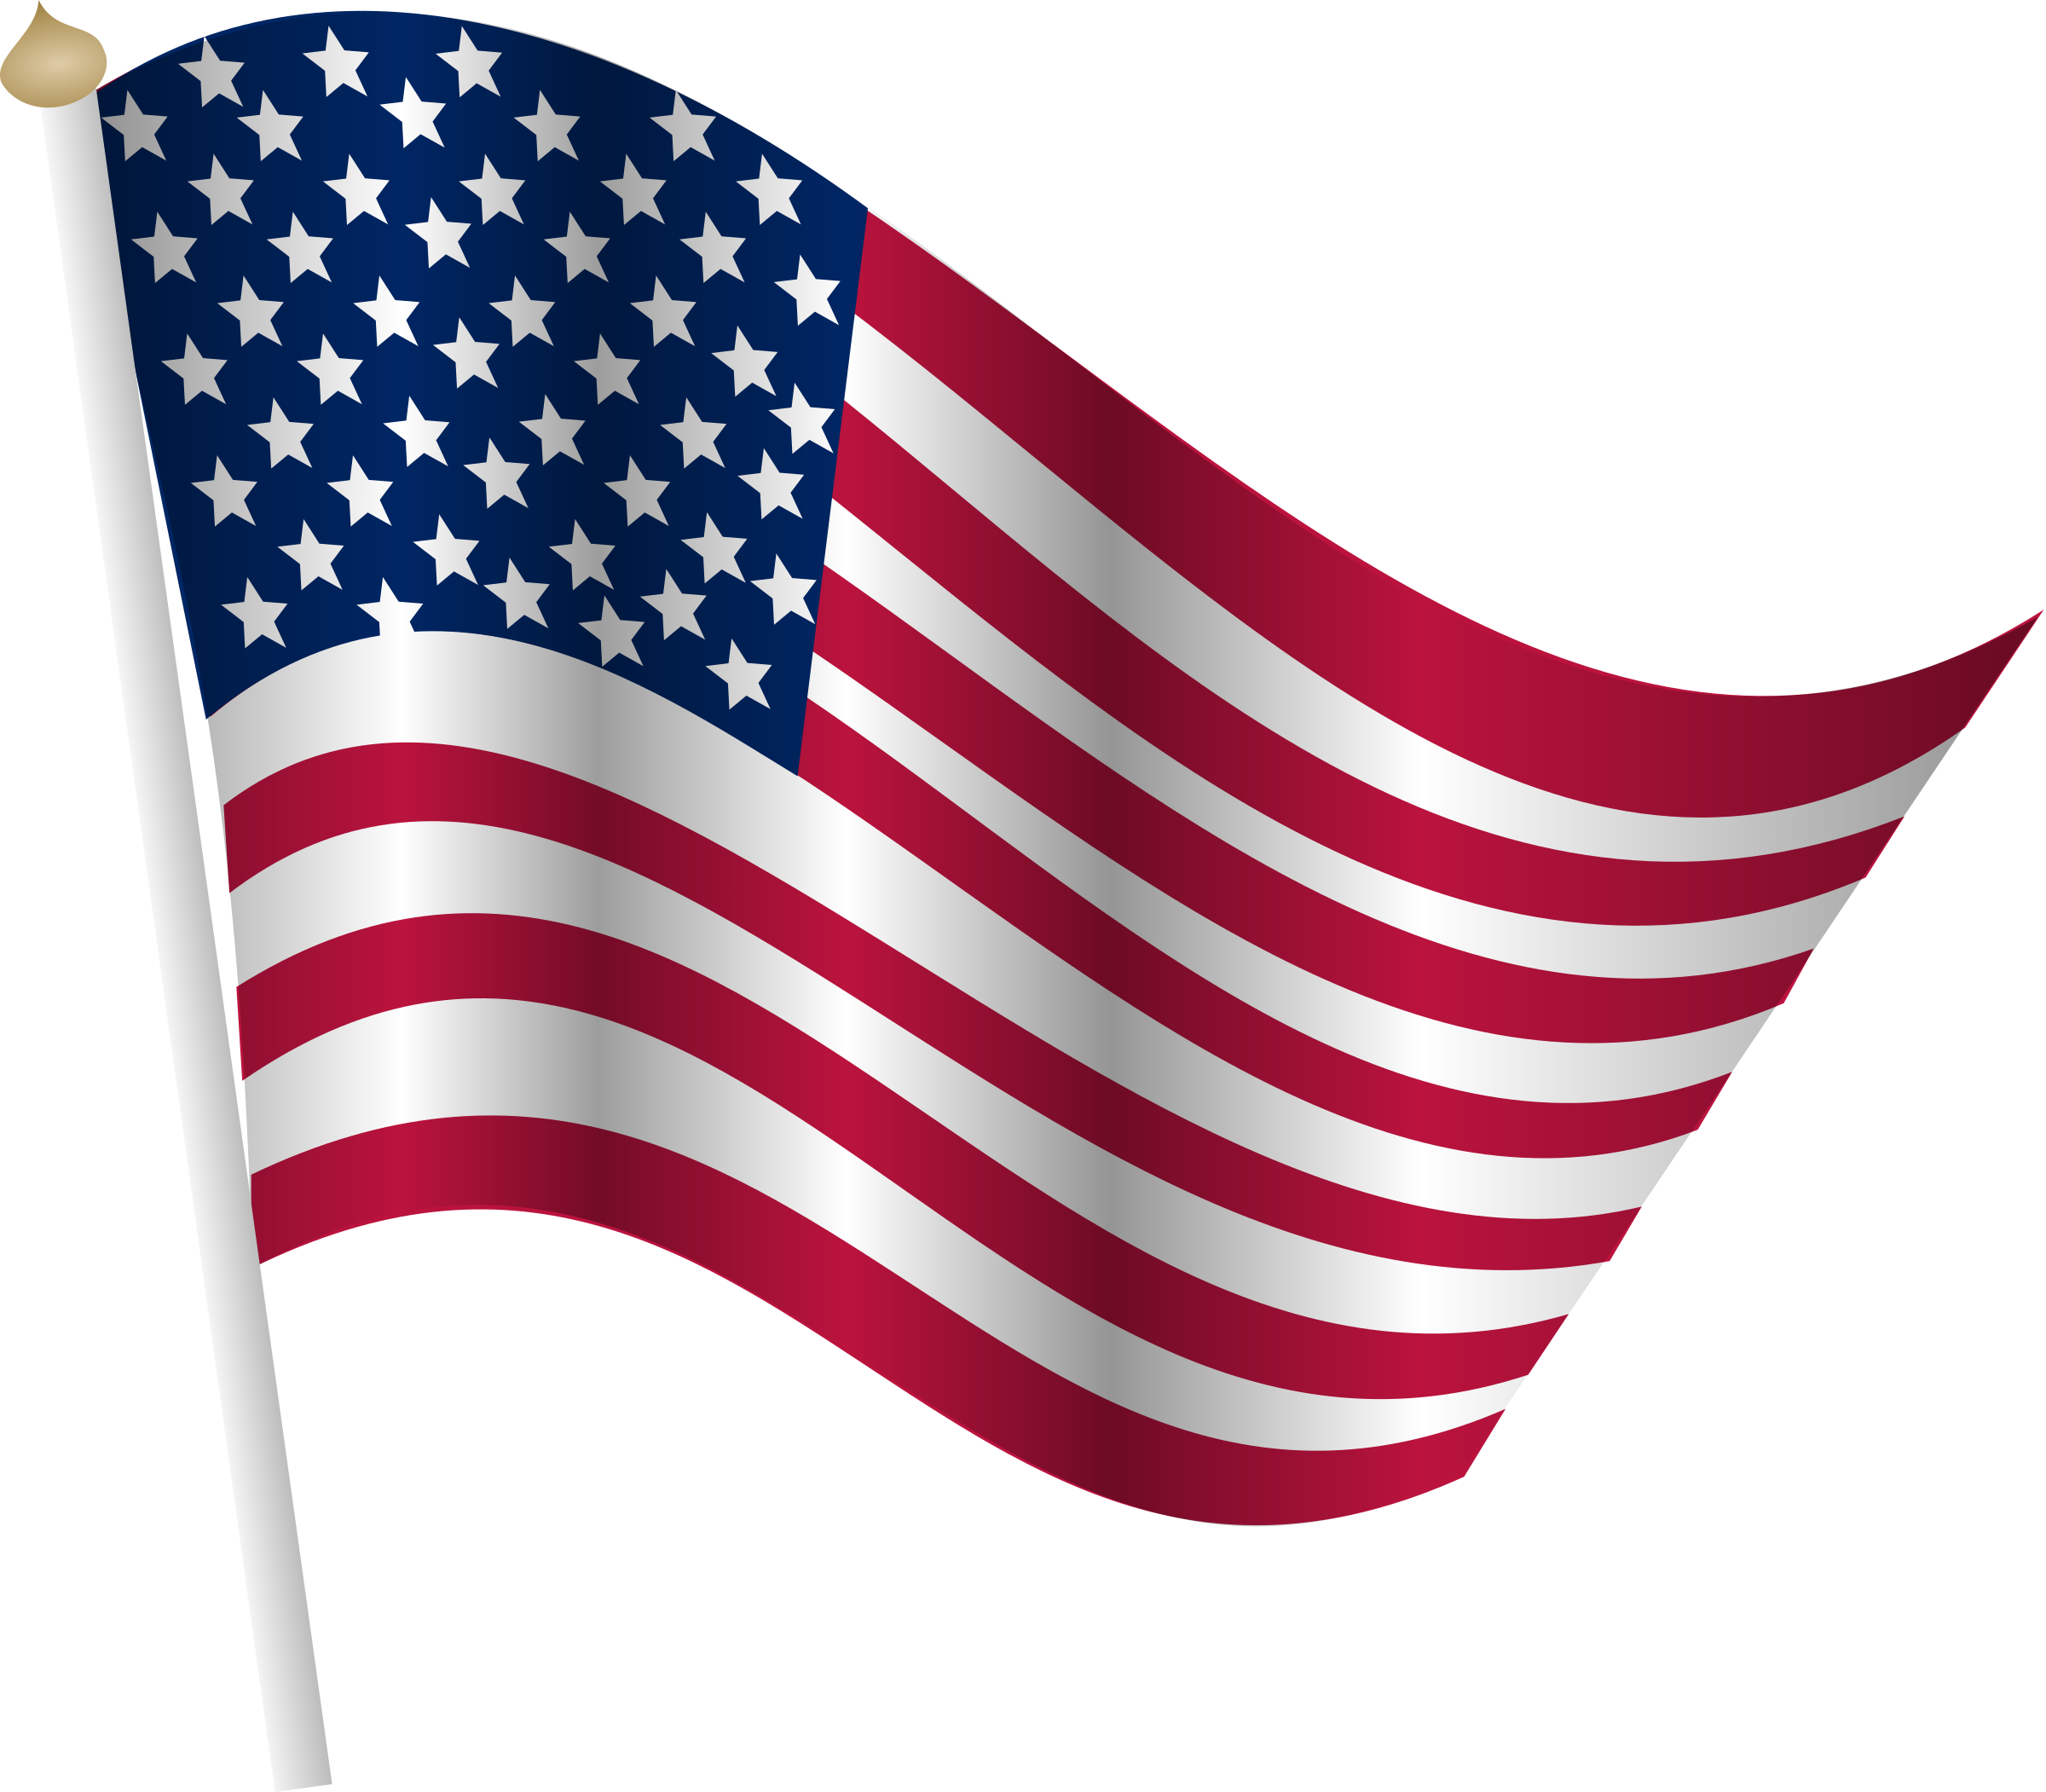 Americn flag on pole clipart with transparent background clip art black and white stock Flag of the United States Clip art - USA flag PNG png download ... clip art black and white stock